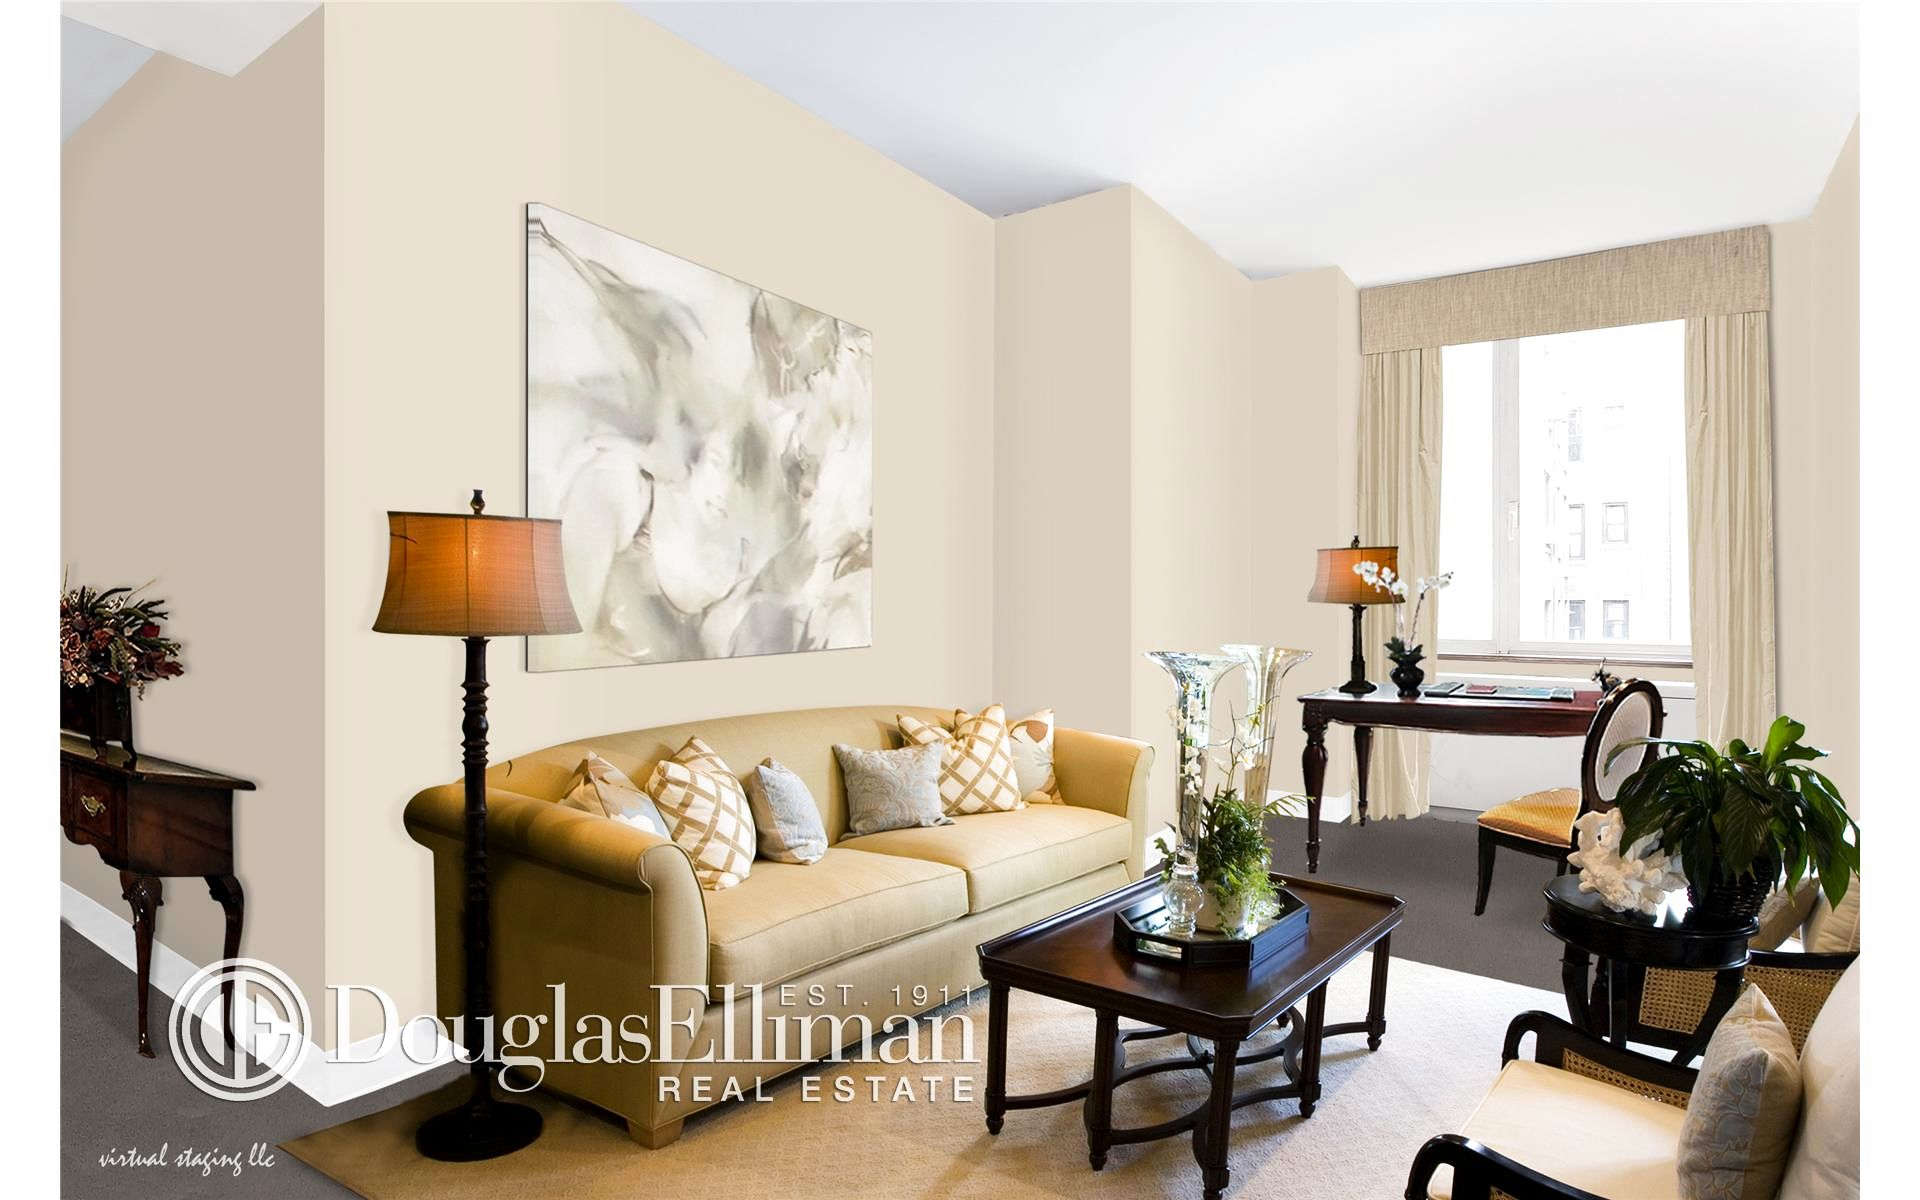 1049 5th Ave, # 11B Photo 12 - ELLIMAN-2006689